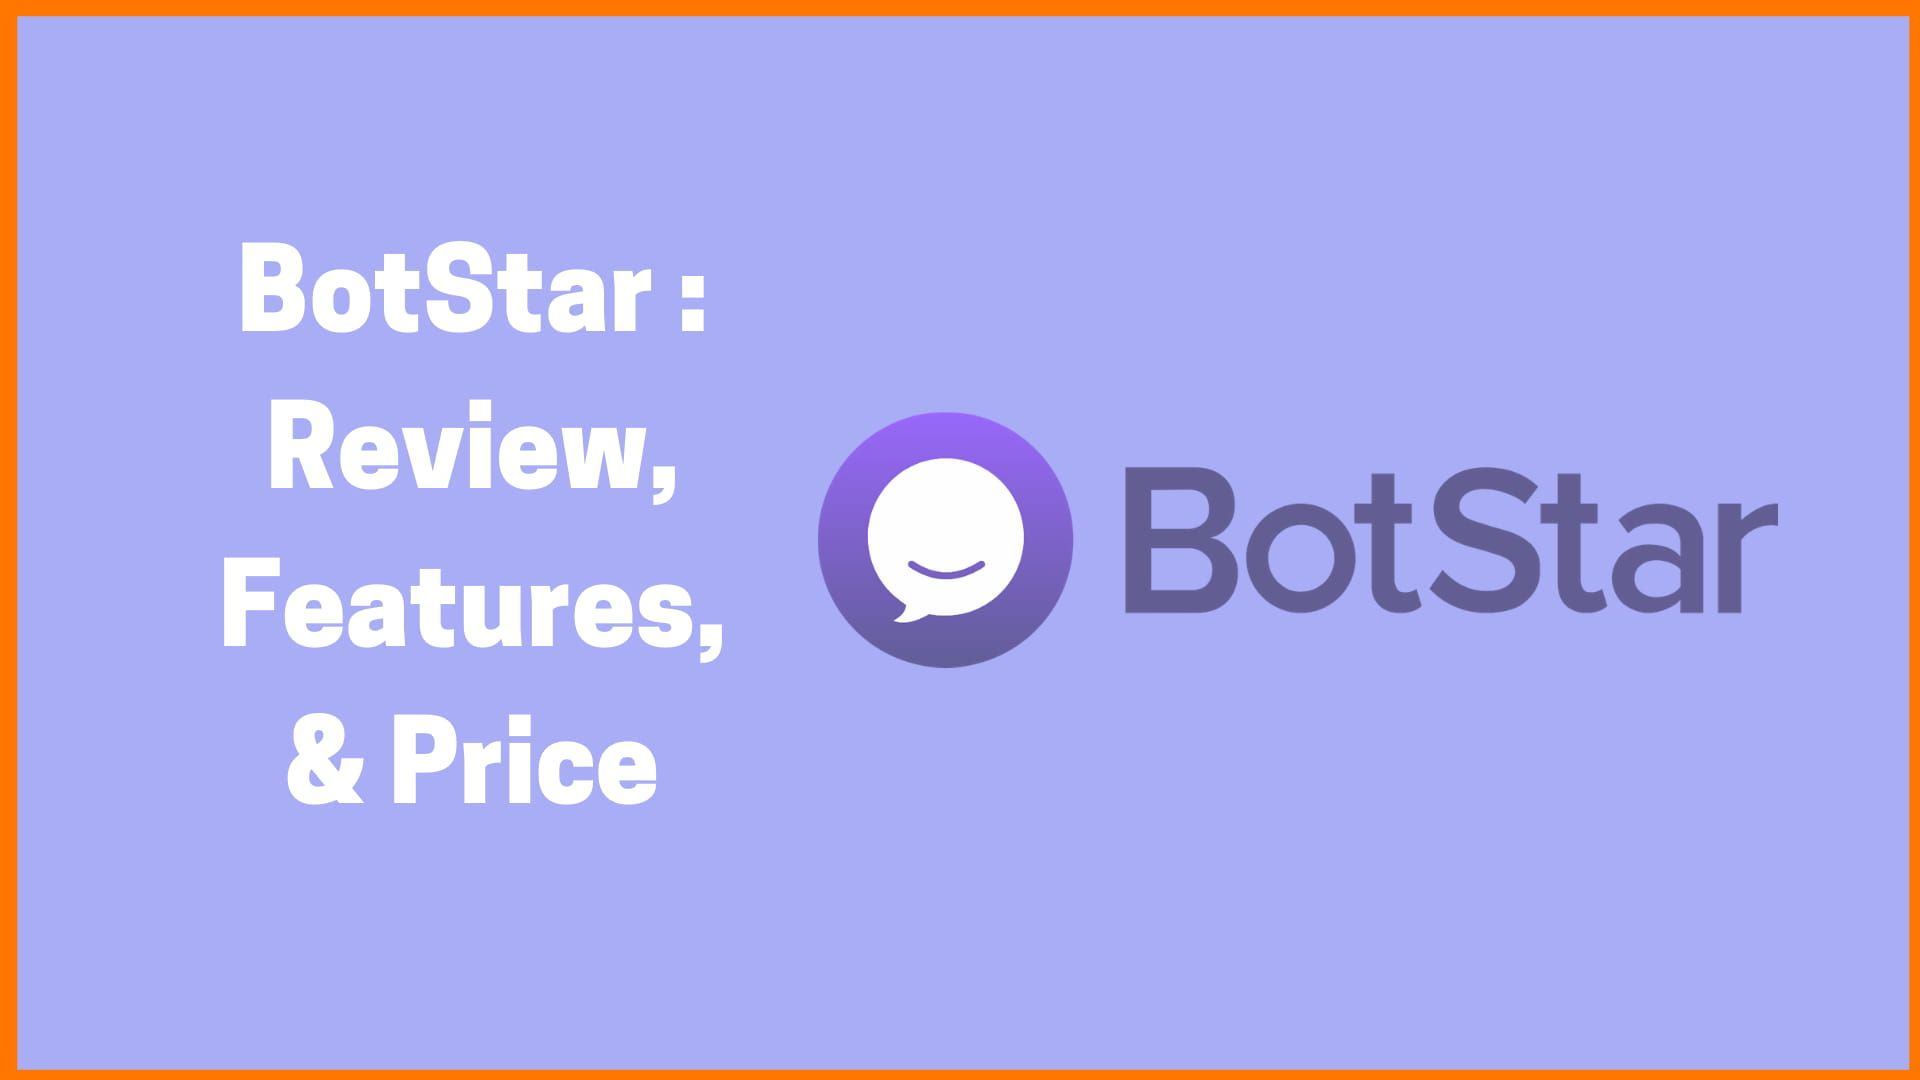 BotStar - Easiest Way to Create Your Own Chatbot